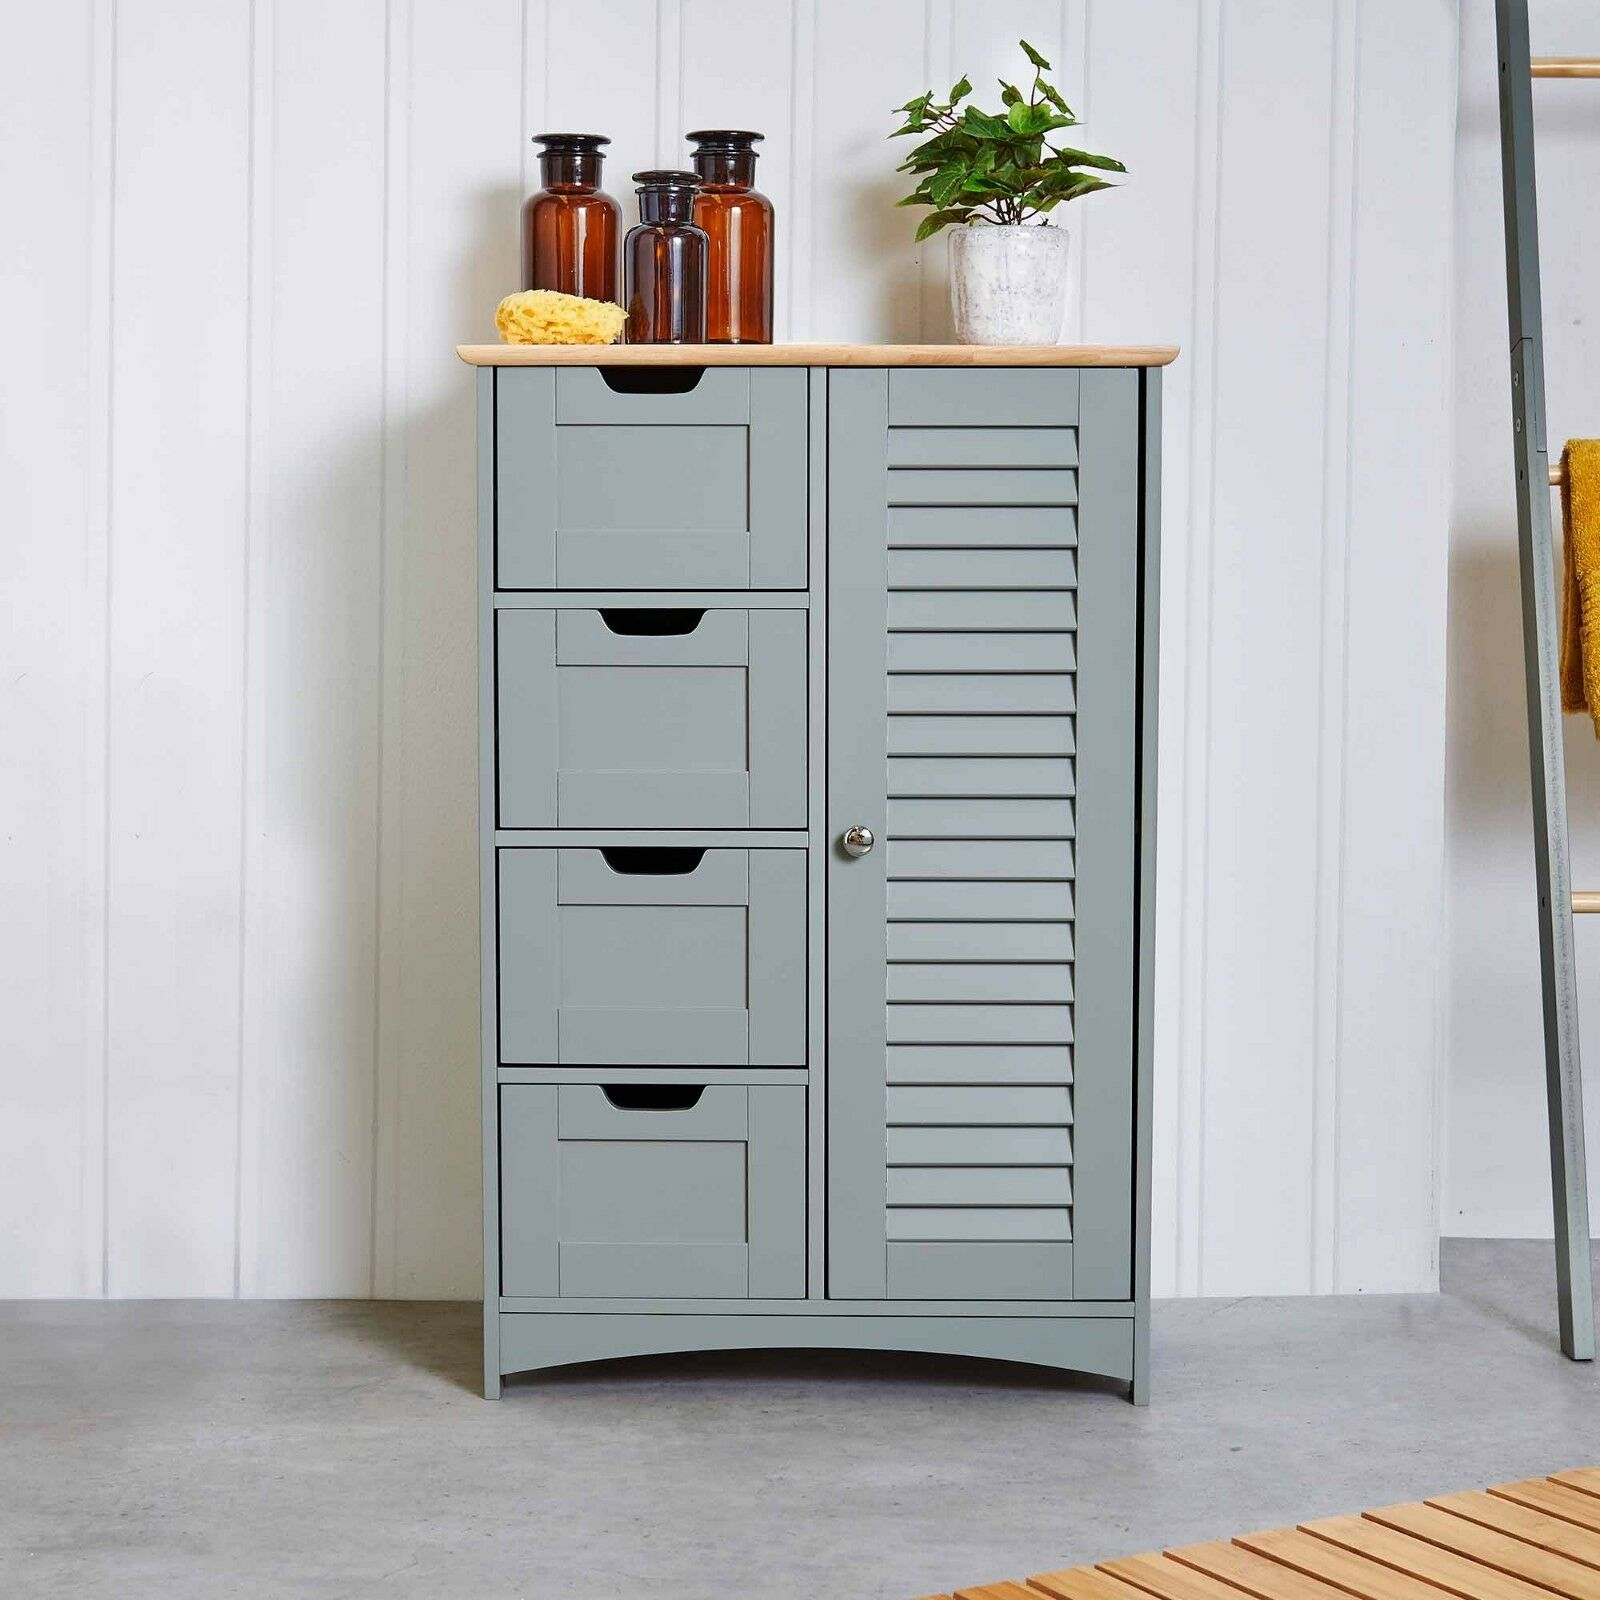 Vonhaus 4 Chest Large Bathroom Cabinet